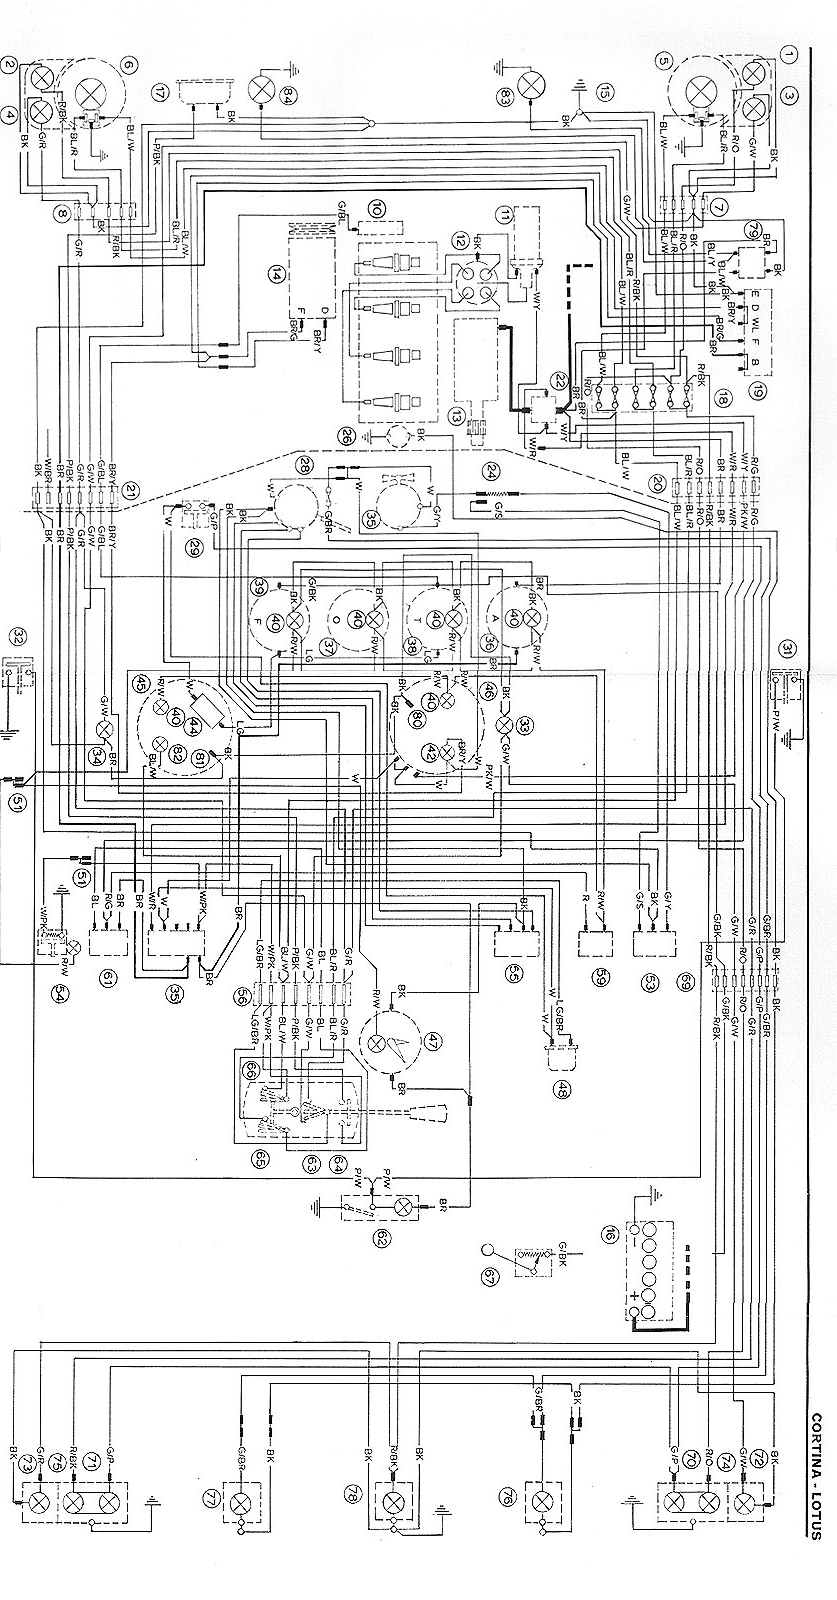 Escort Mk1 Fuse Box Diagram Auto Electrical Wiring Kpx Dirt Bike Lotus Cortina Diagrams